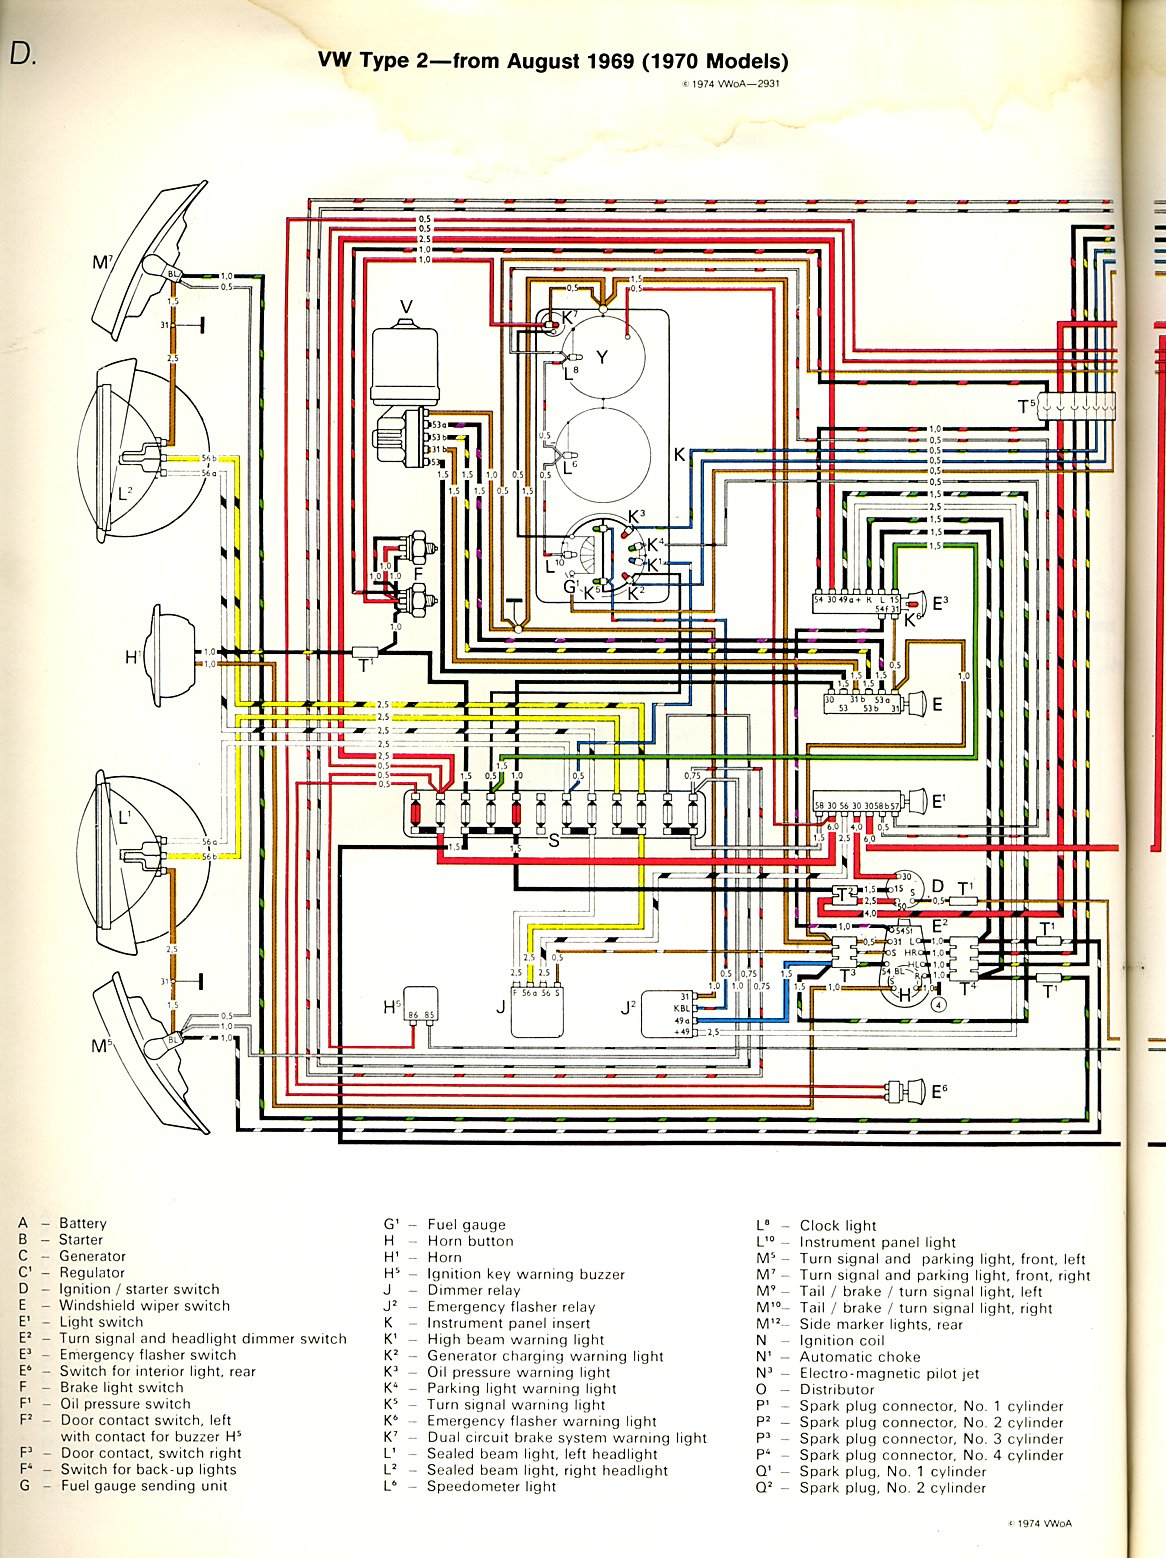 baybus_70a 1970 bus wiring diagram thegoldenbug com 74 vw bus wiring diagram at nearapp.co